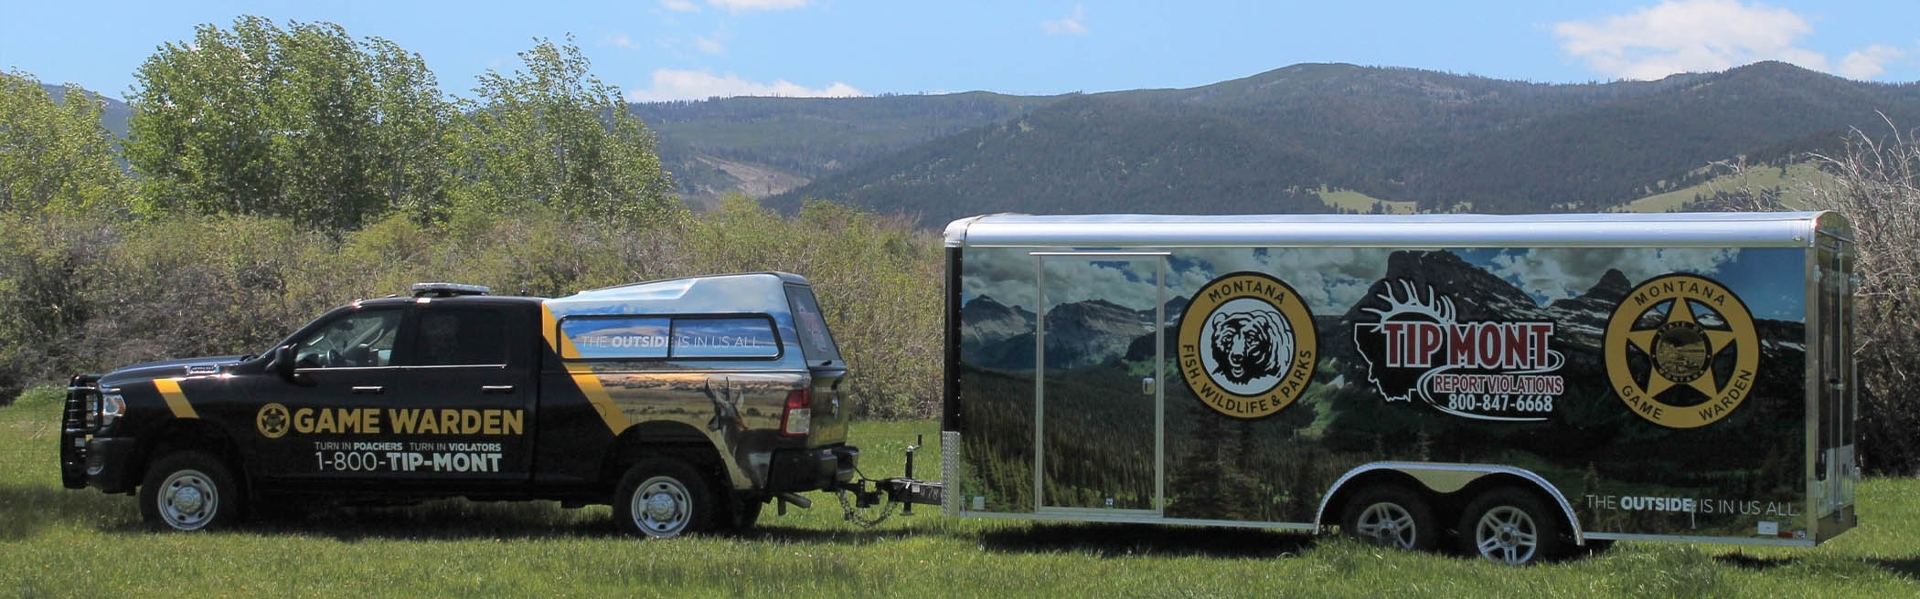 FWP Game Warden truck and TIPMONT trailer